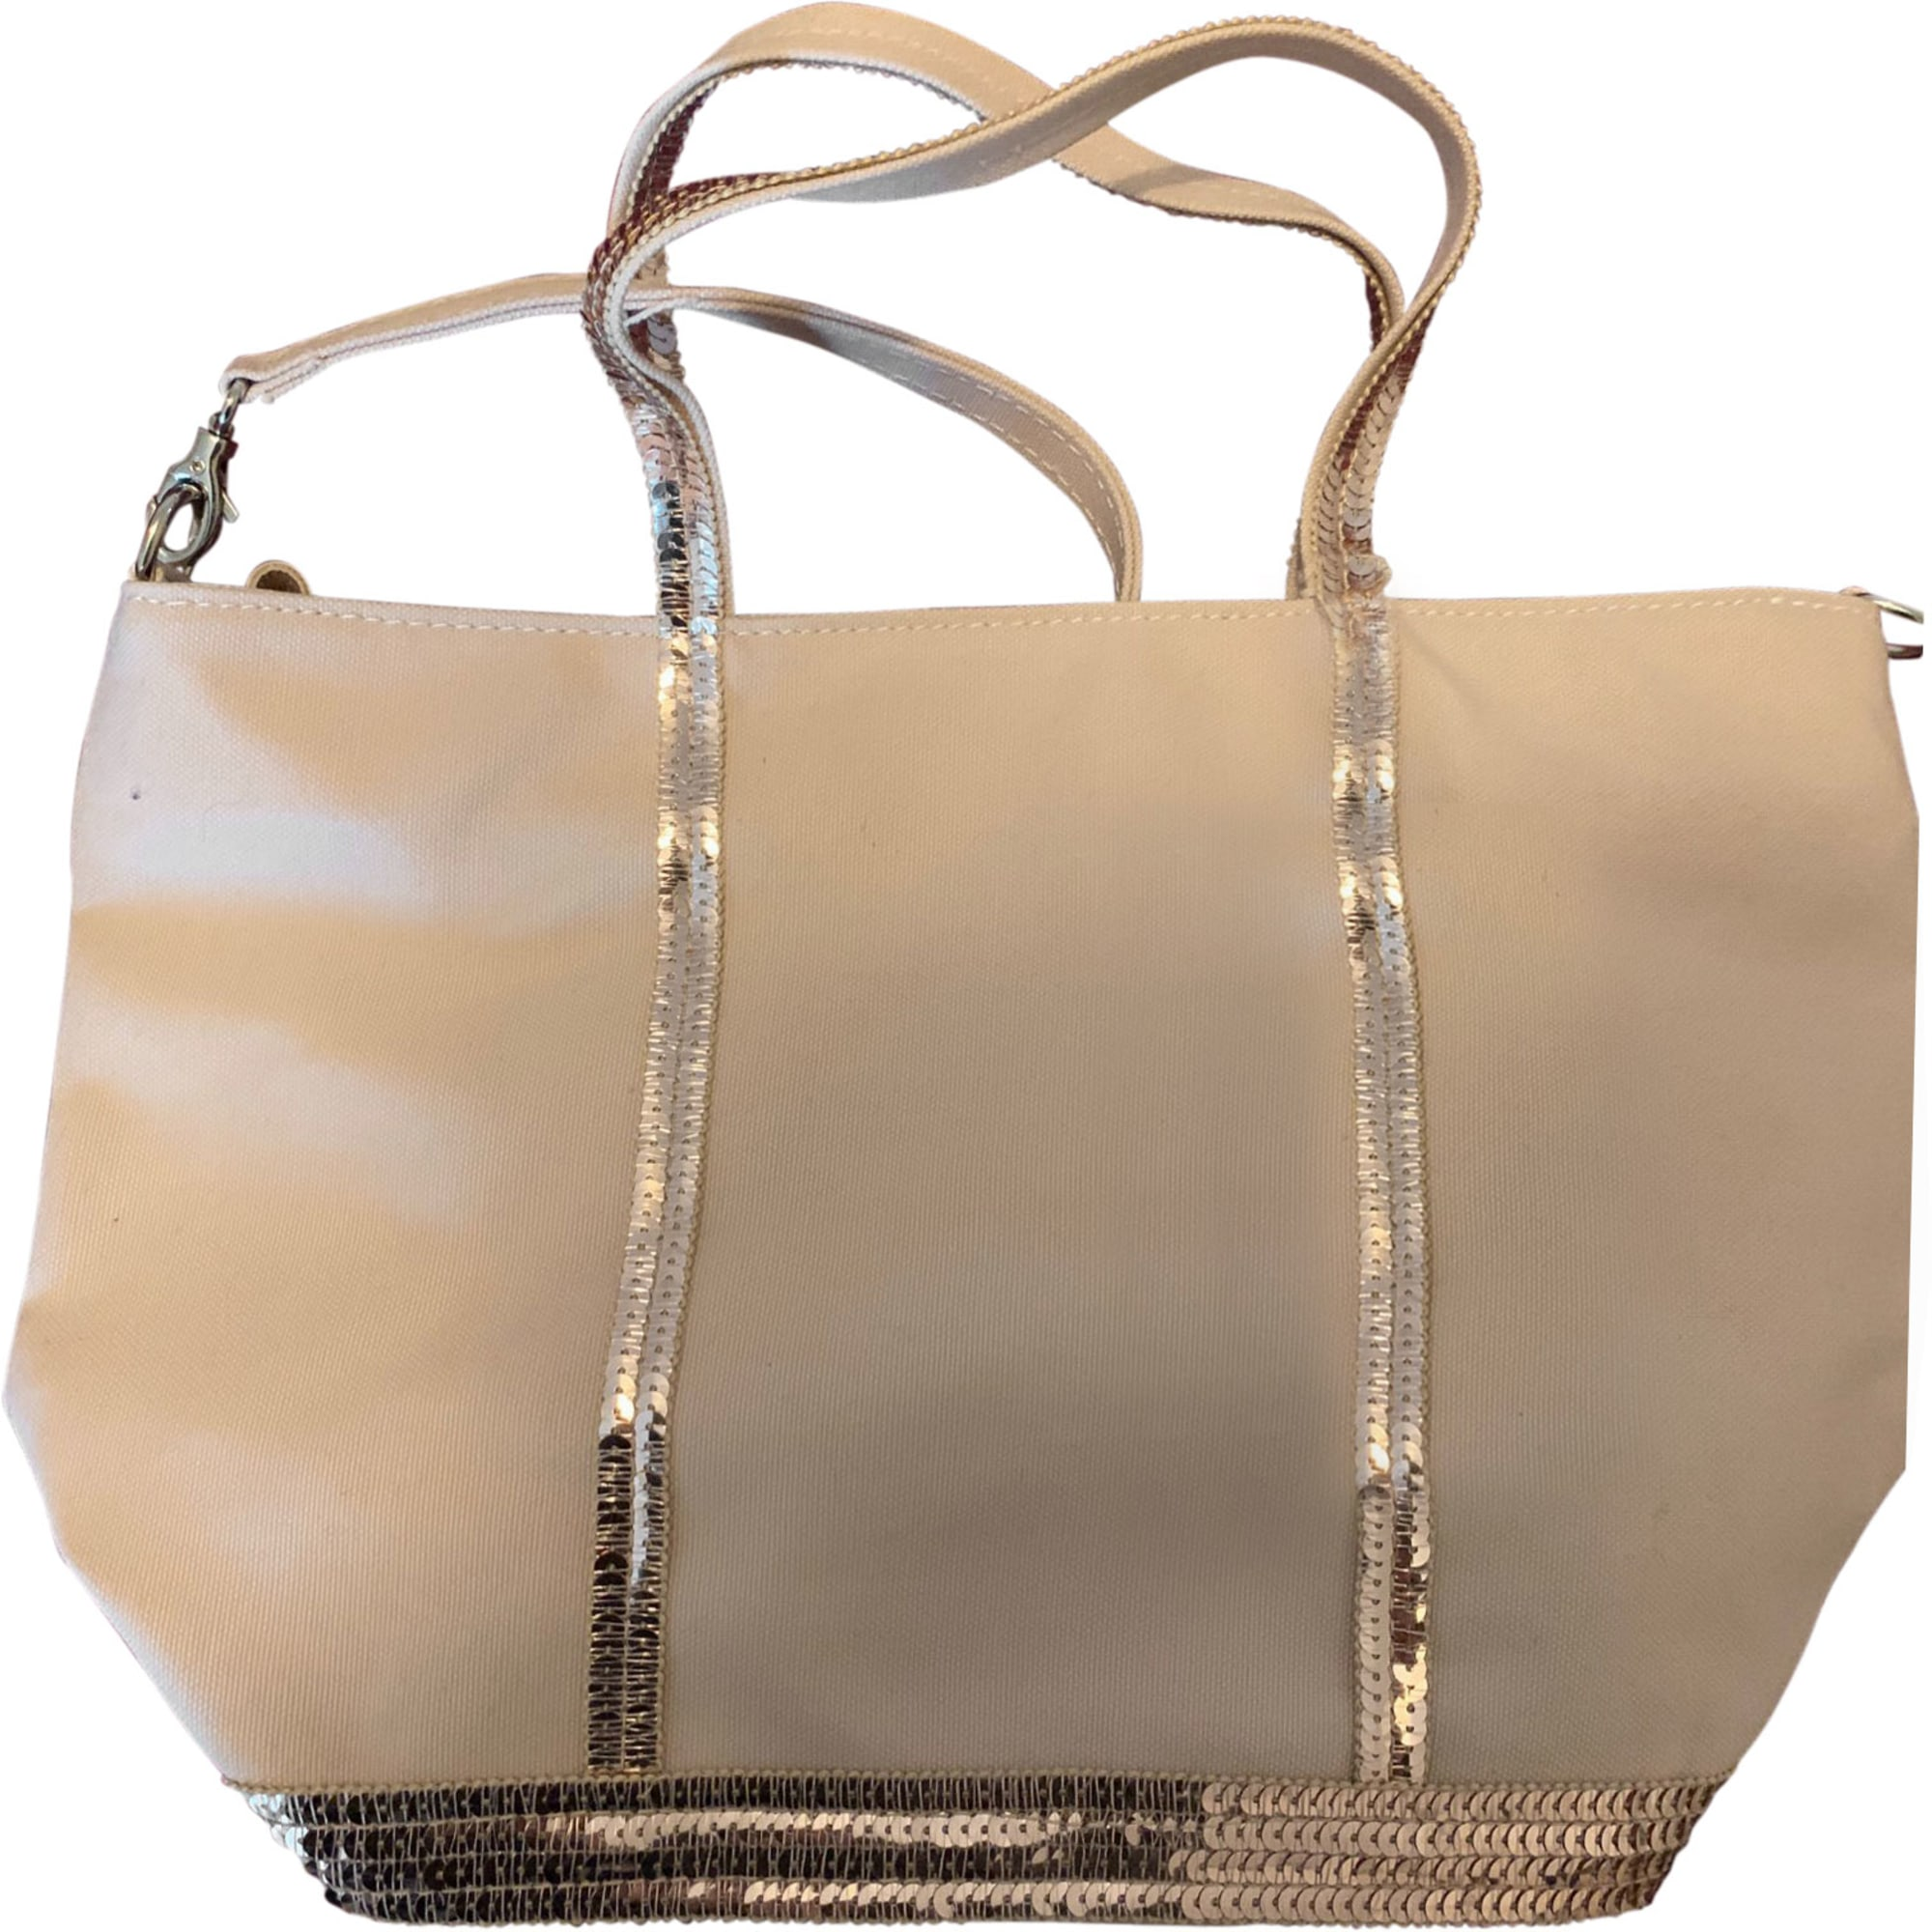 Non-Leather Shoulder Bag VANESSA BRUNO Beige, camel